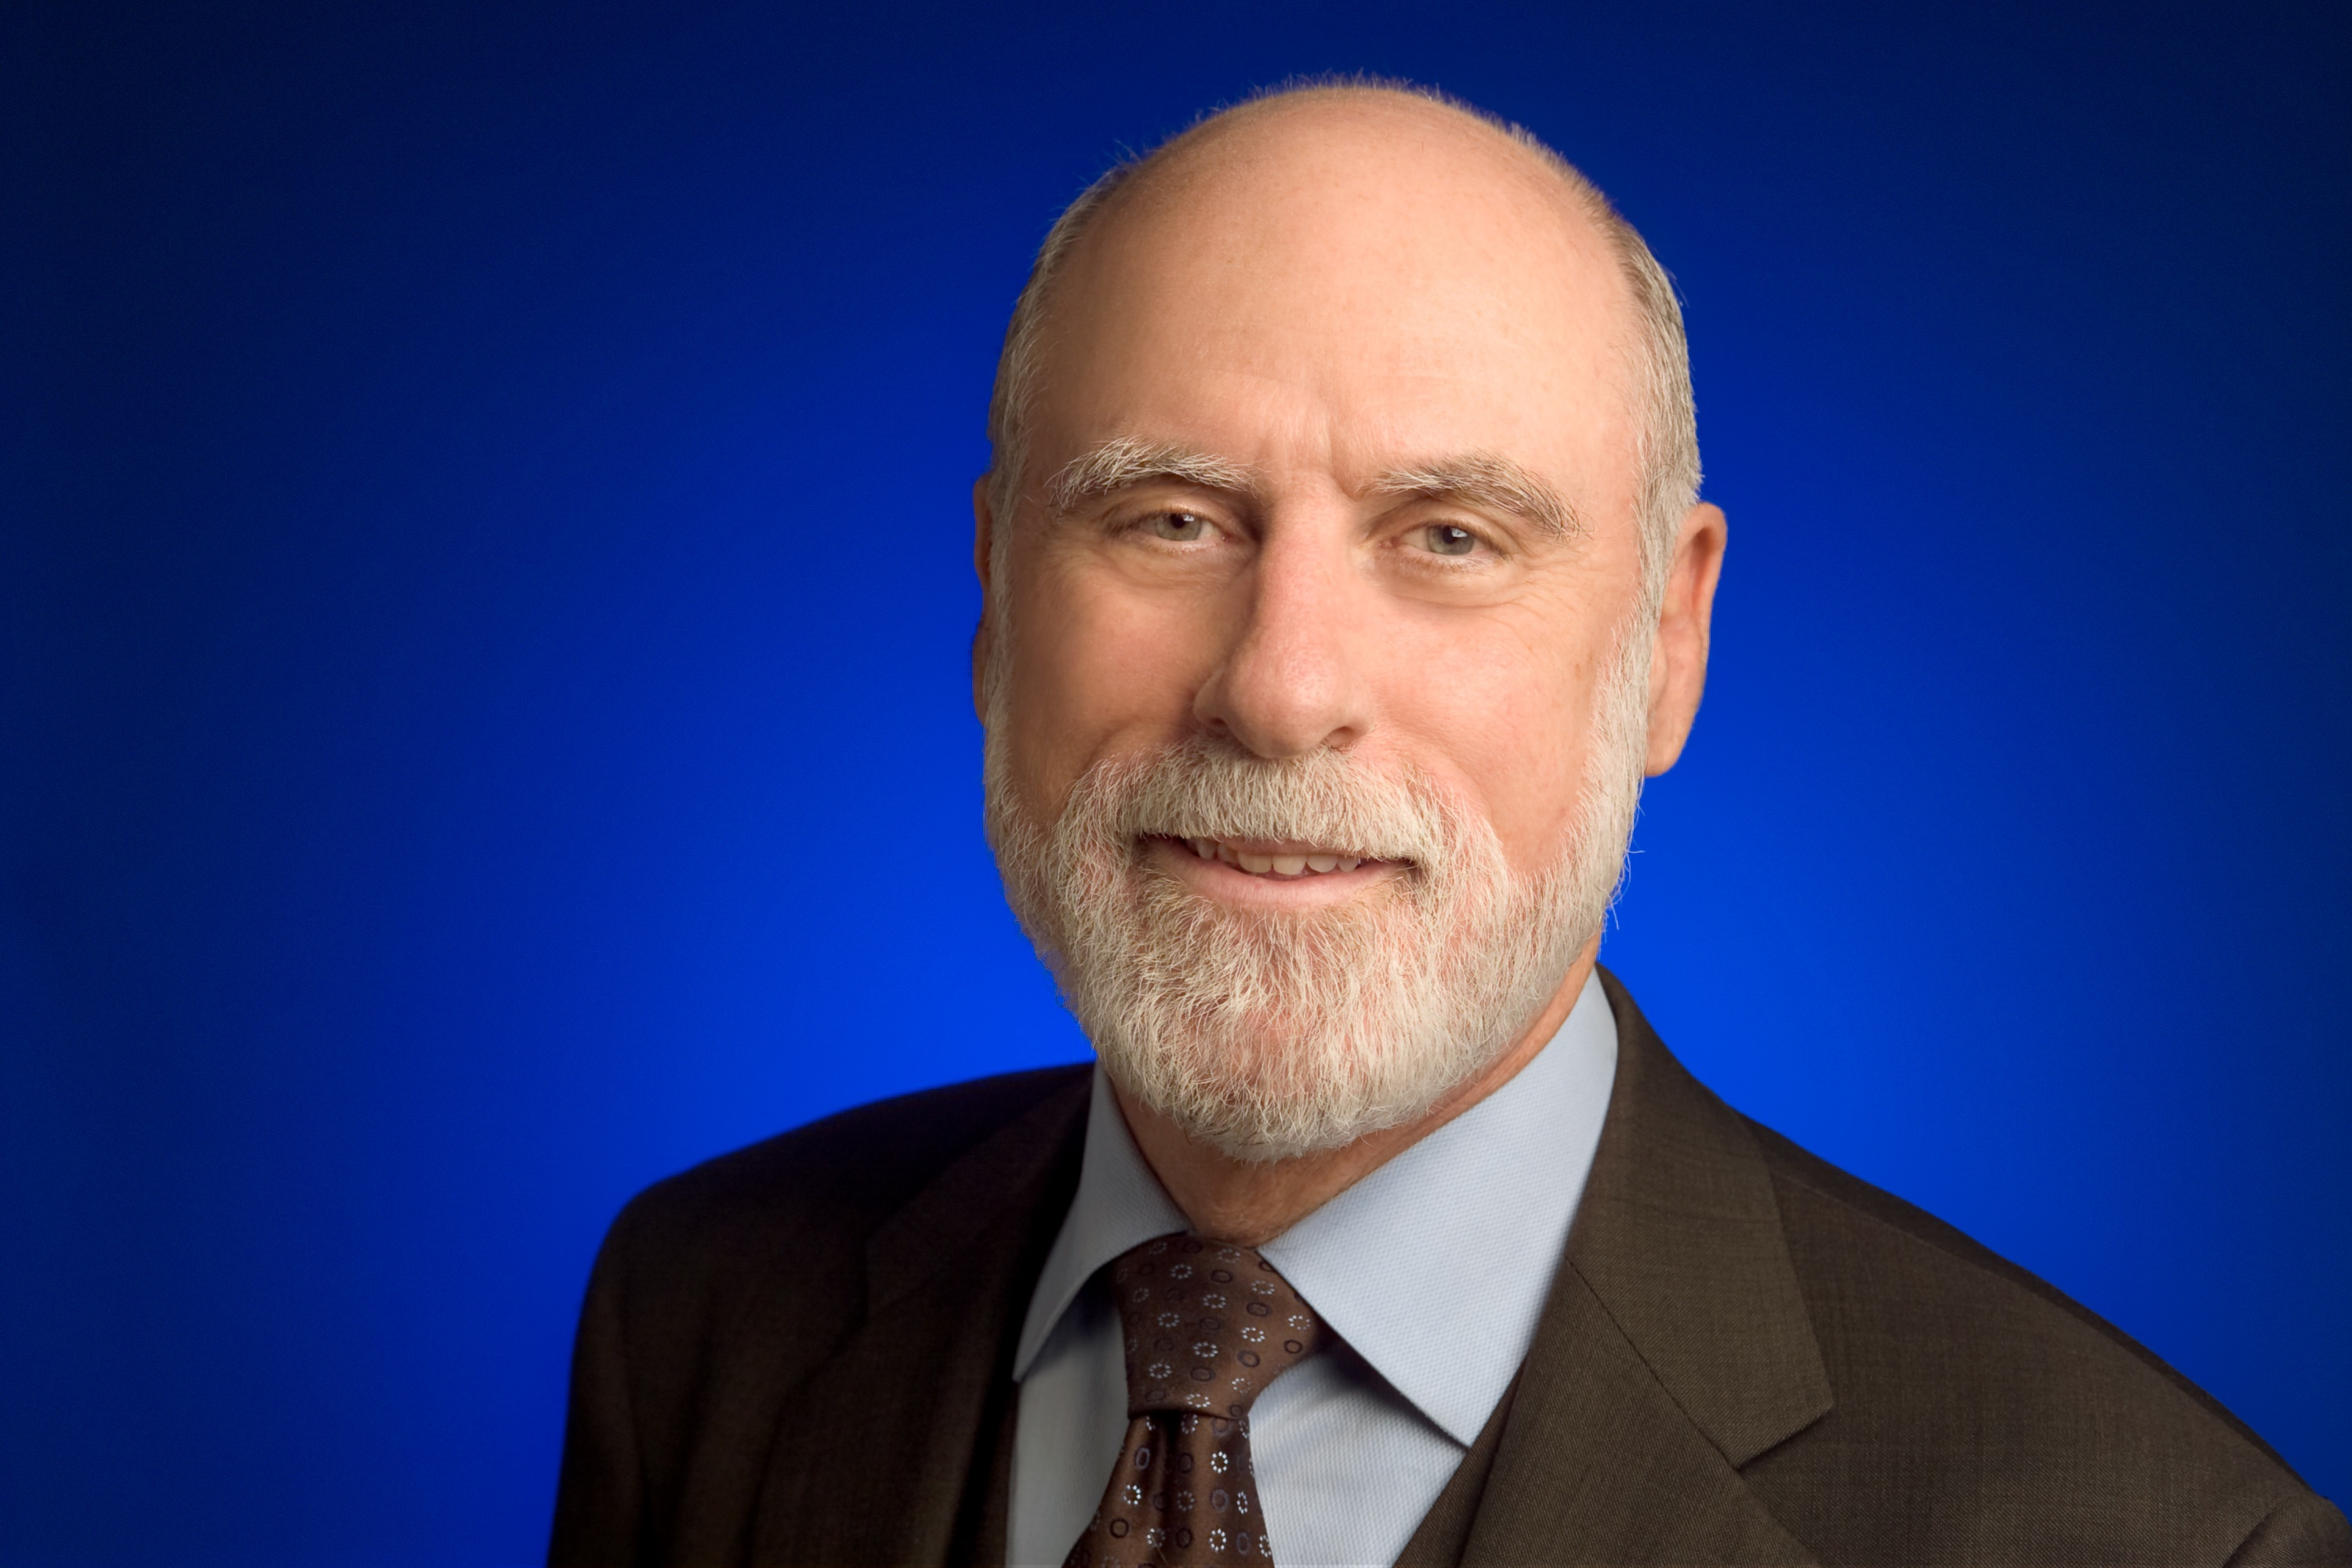 Vint Cerf has a small smile